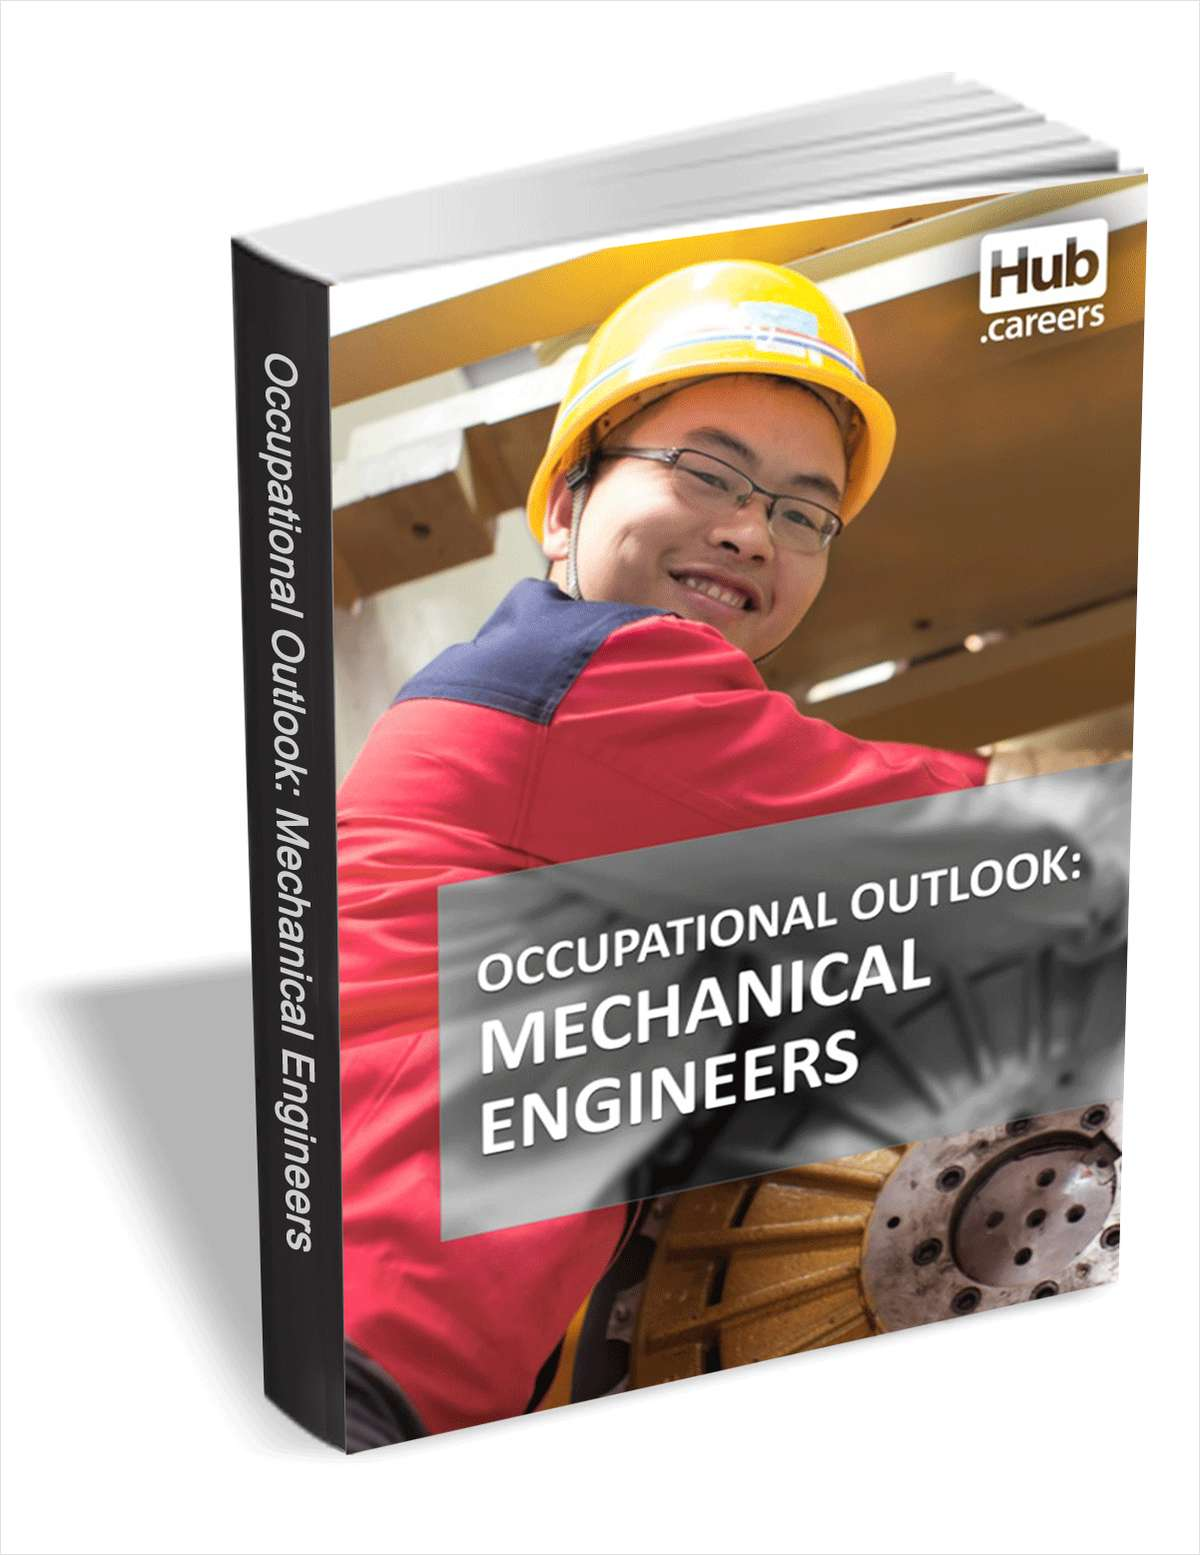 Mechanical Engineers - Occupational Outlook